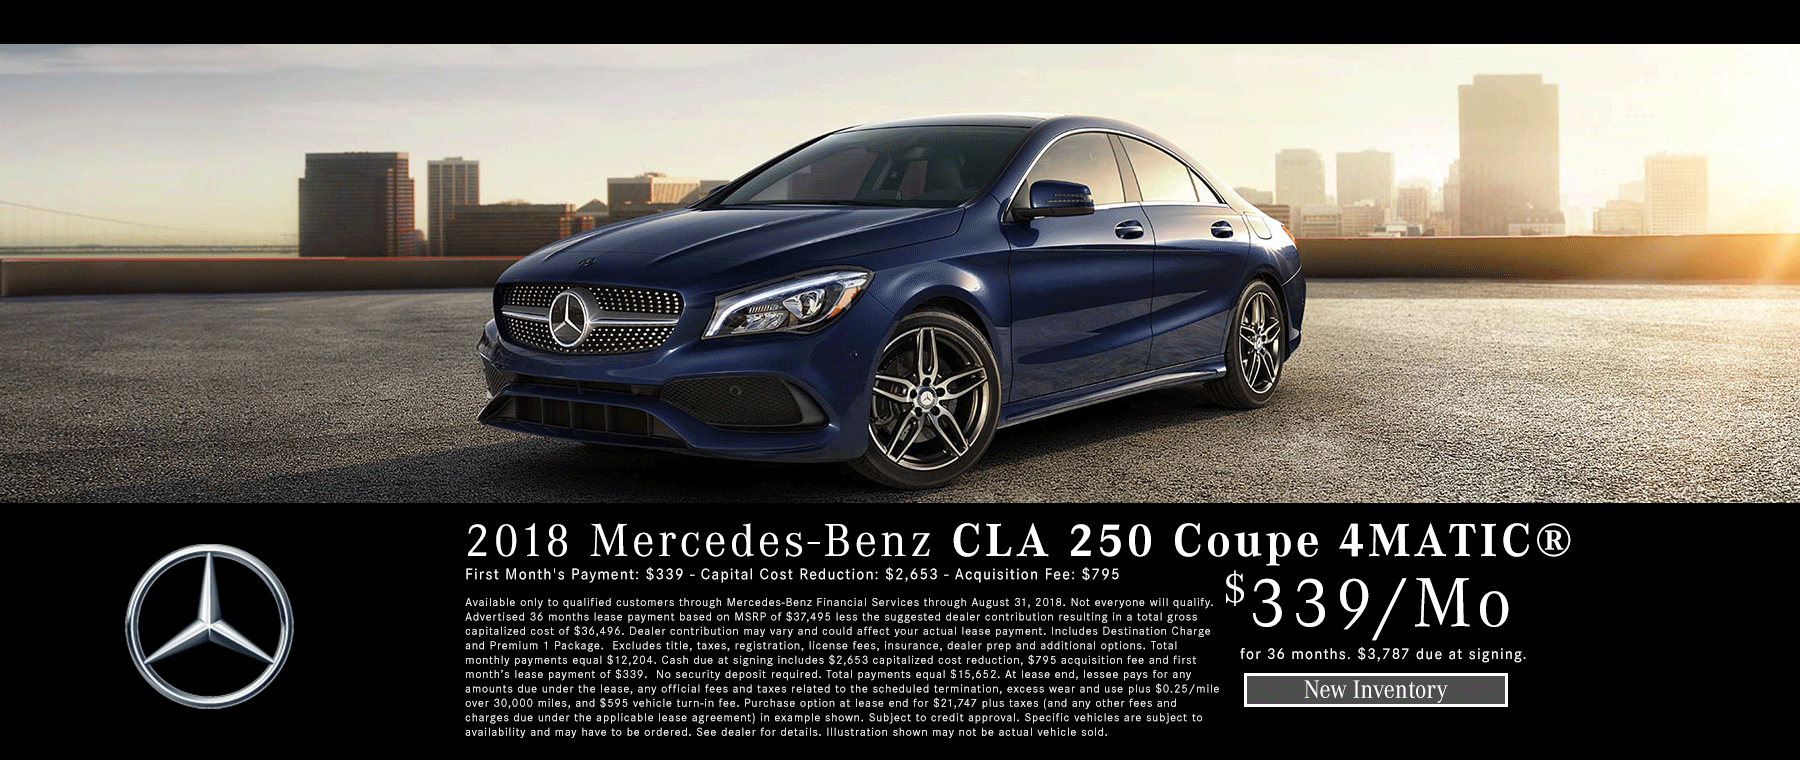 2018 CLA 250 COUPE 4MATIC Lease near Meridian